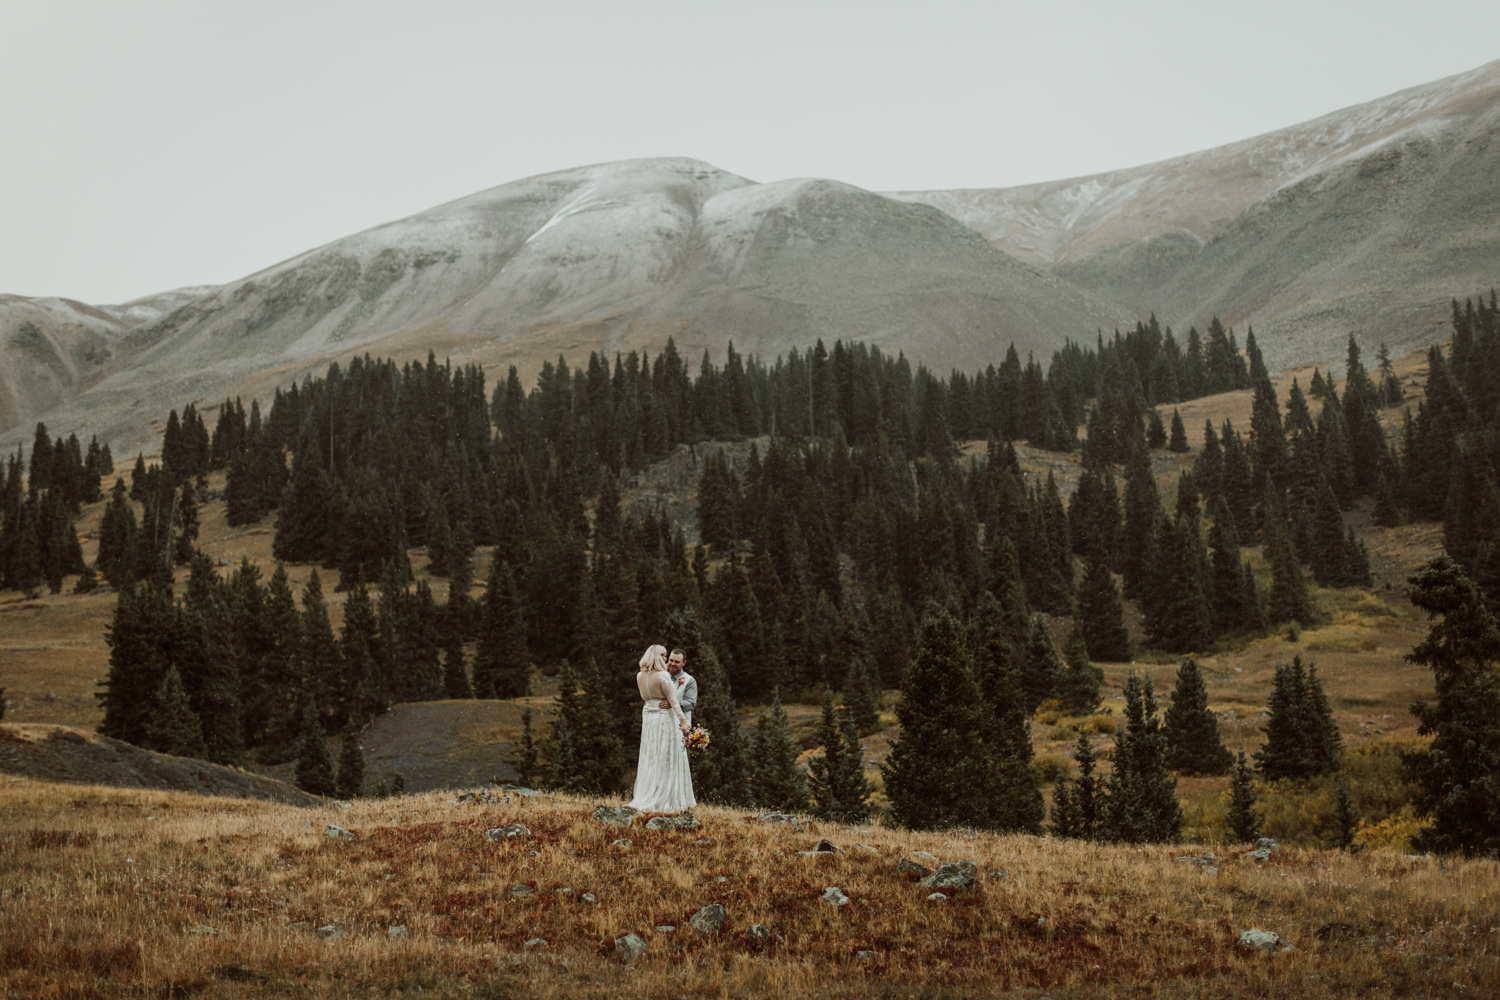 colorado-elopement-photographer-puente-cabin-69.jpg